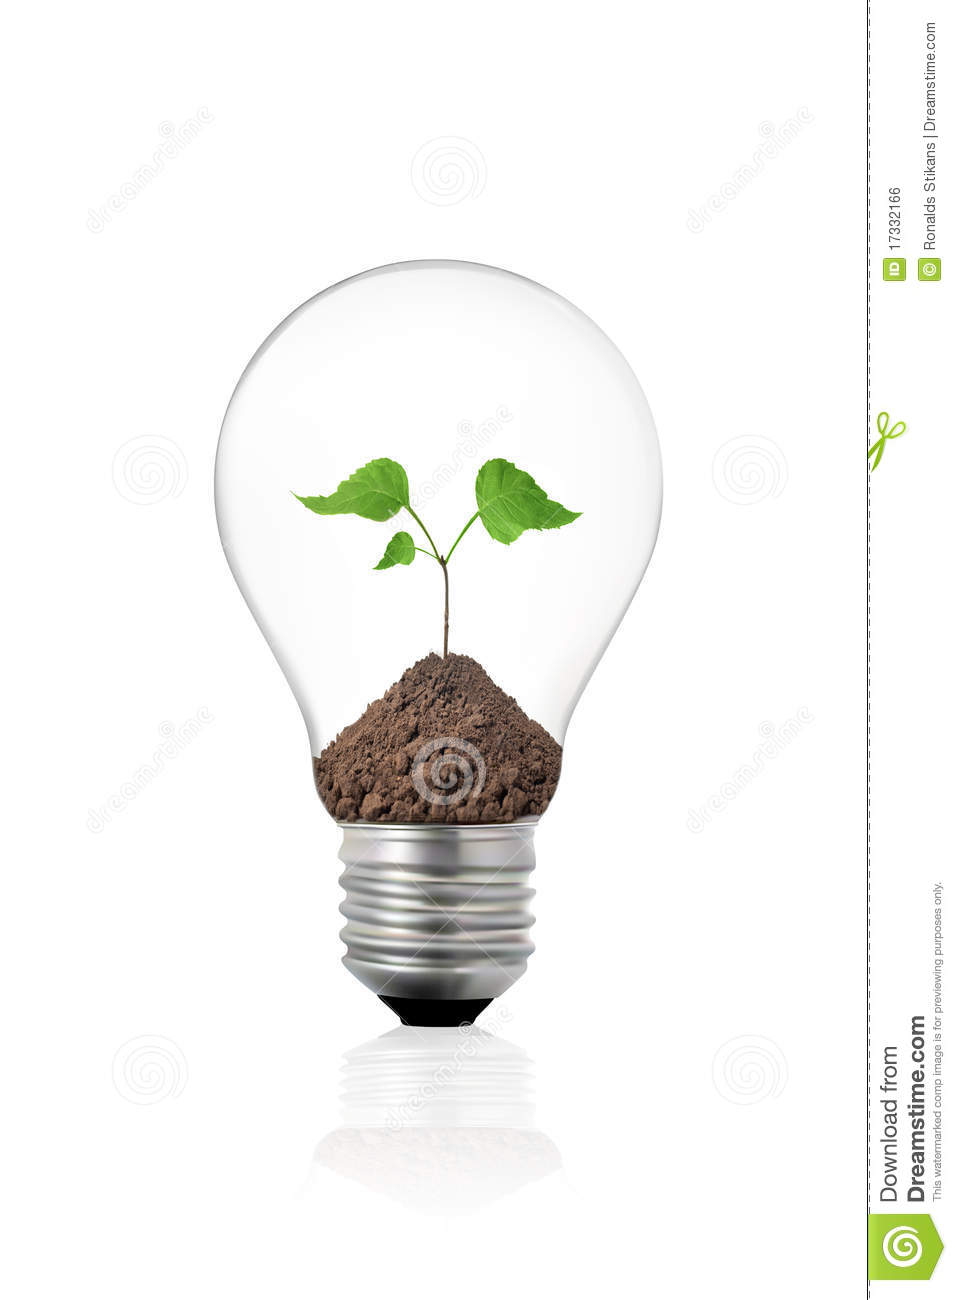 eco concept light bulb with green plant inside royalty free stock image image 17332166. Black Bedroom Furniture Sets. Home Design Ideas